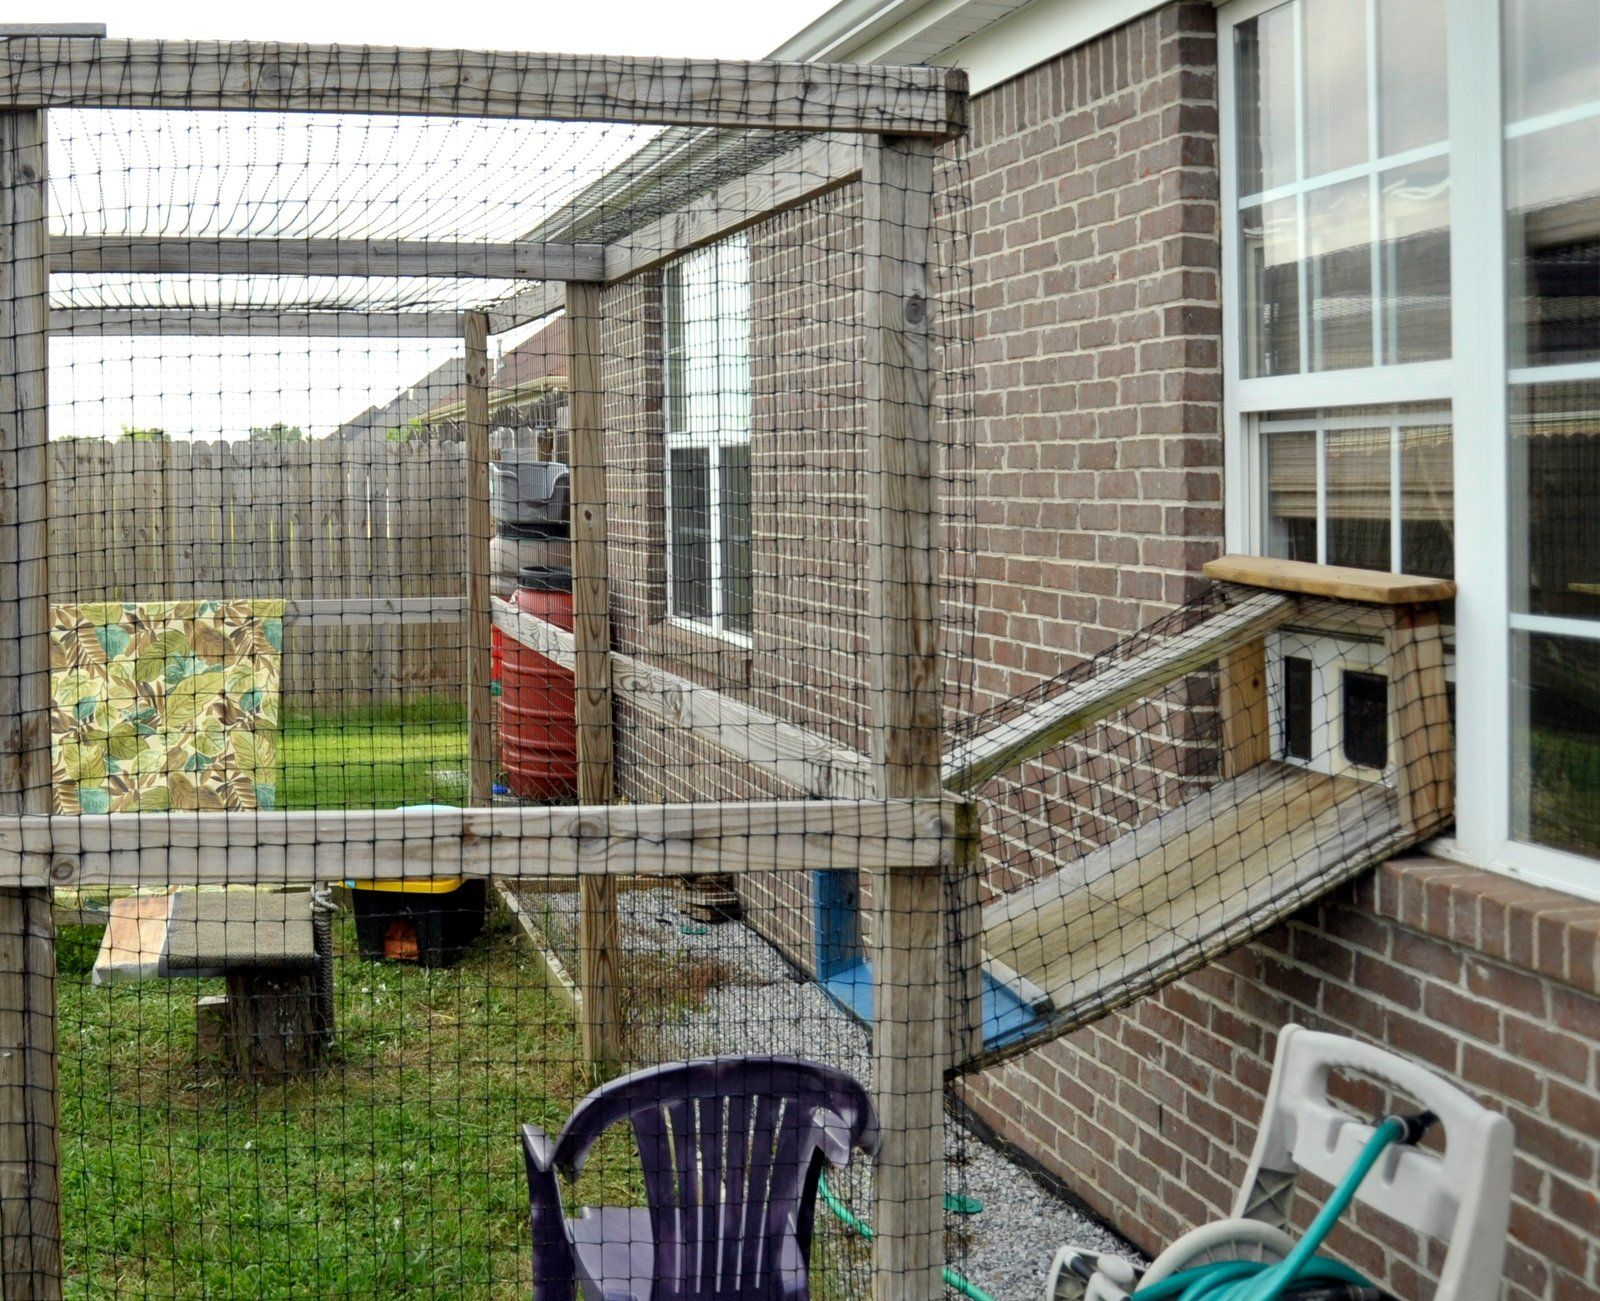 catio with window ramp attachment | catio | Outdoor cats